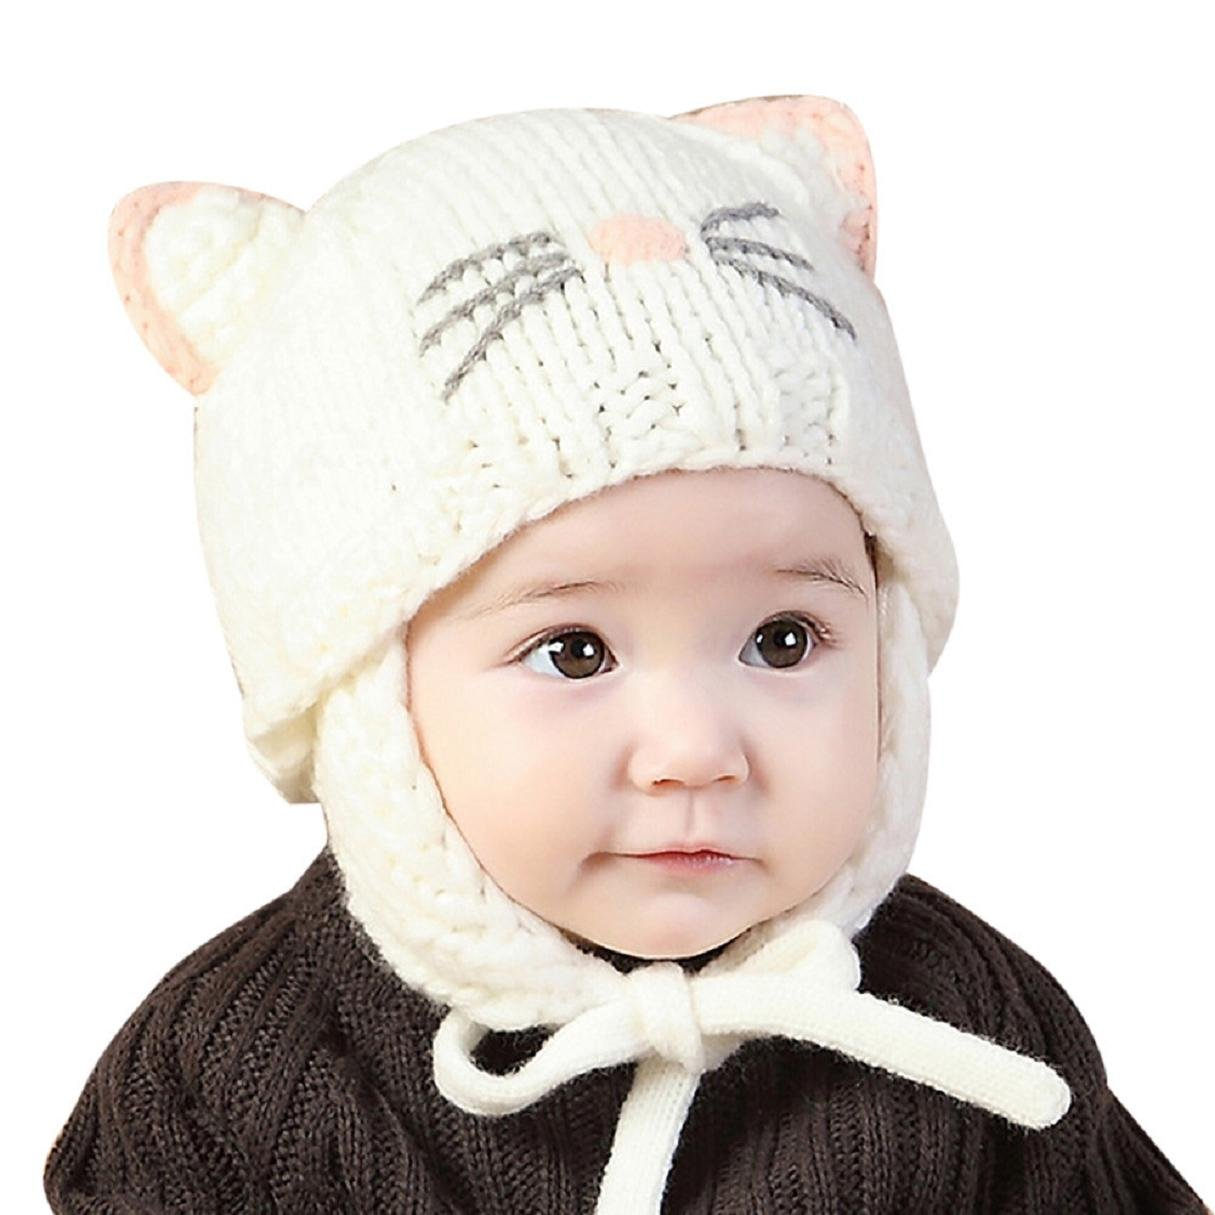 Witspace Baby Boys Girls Earflaps Hats Toddler Kids Winter Warm Knitted Cute Caps Children Beanies